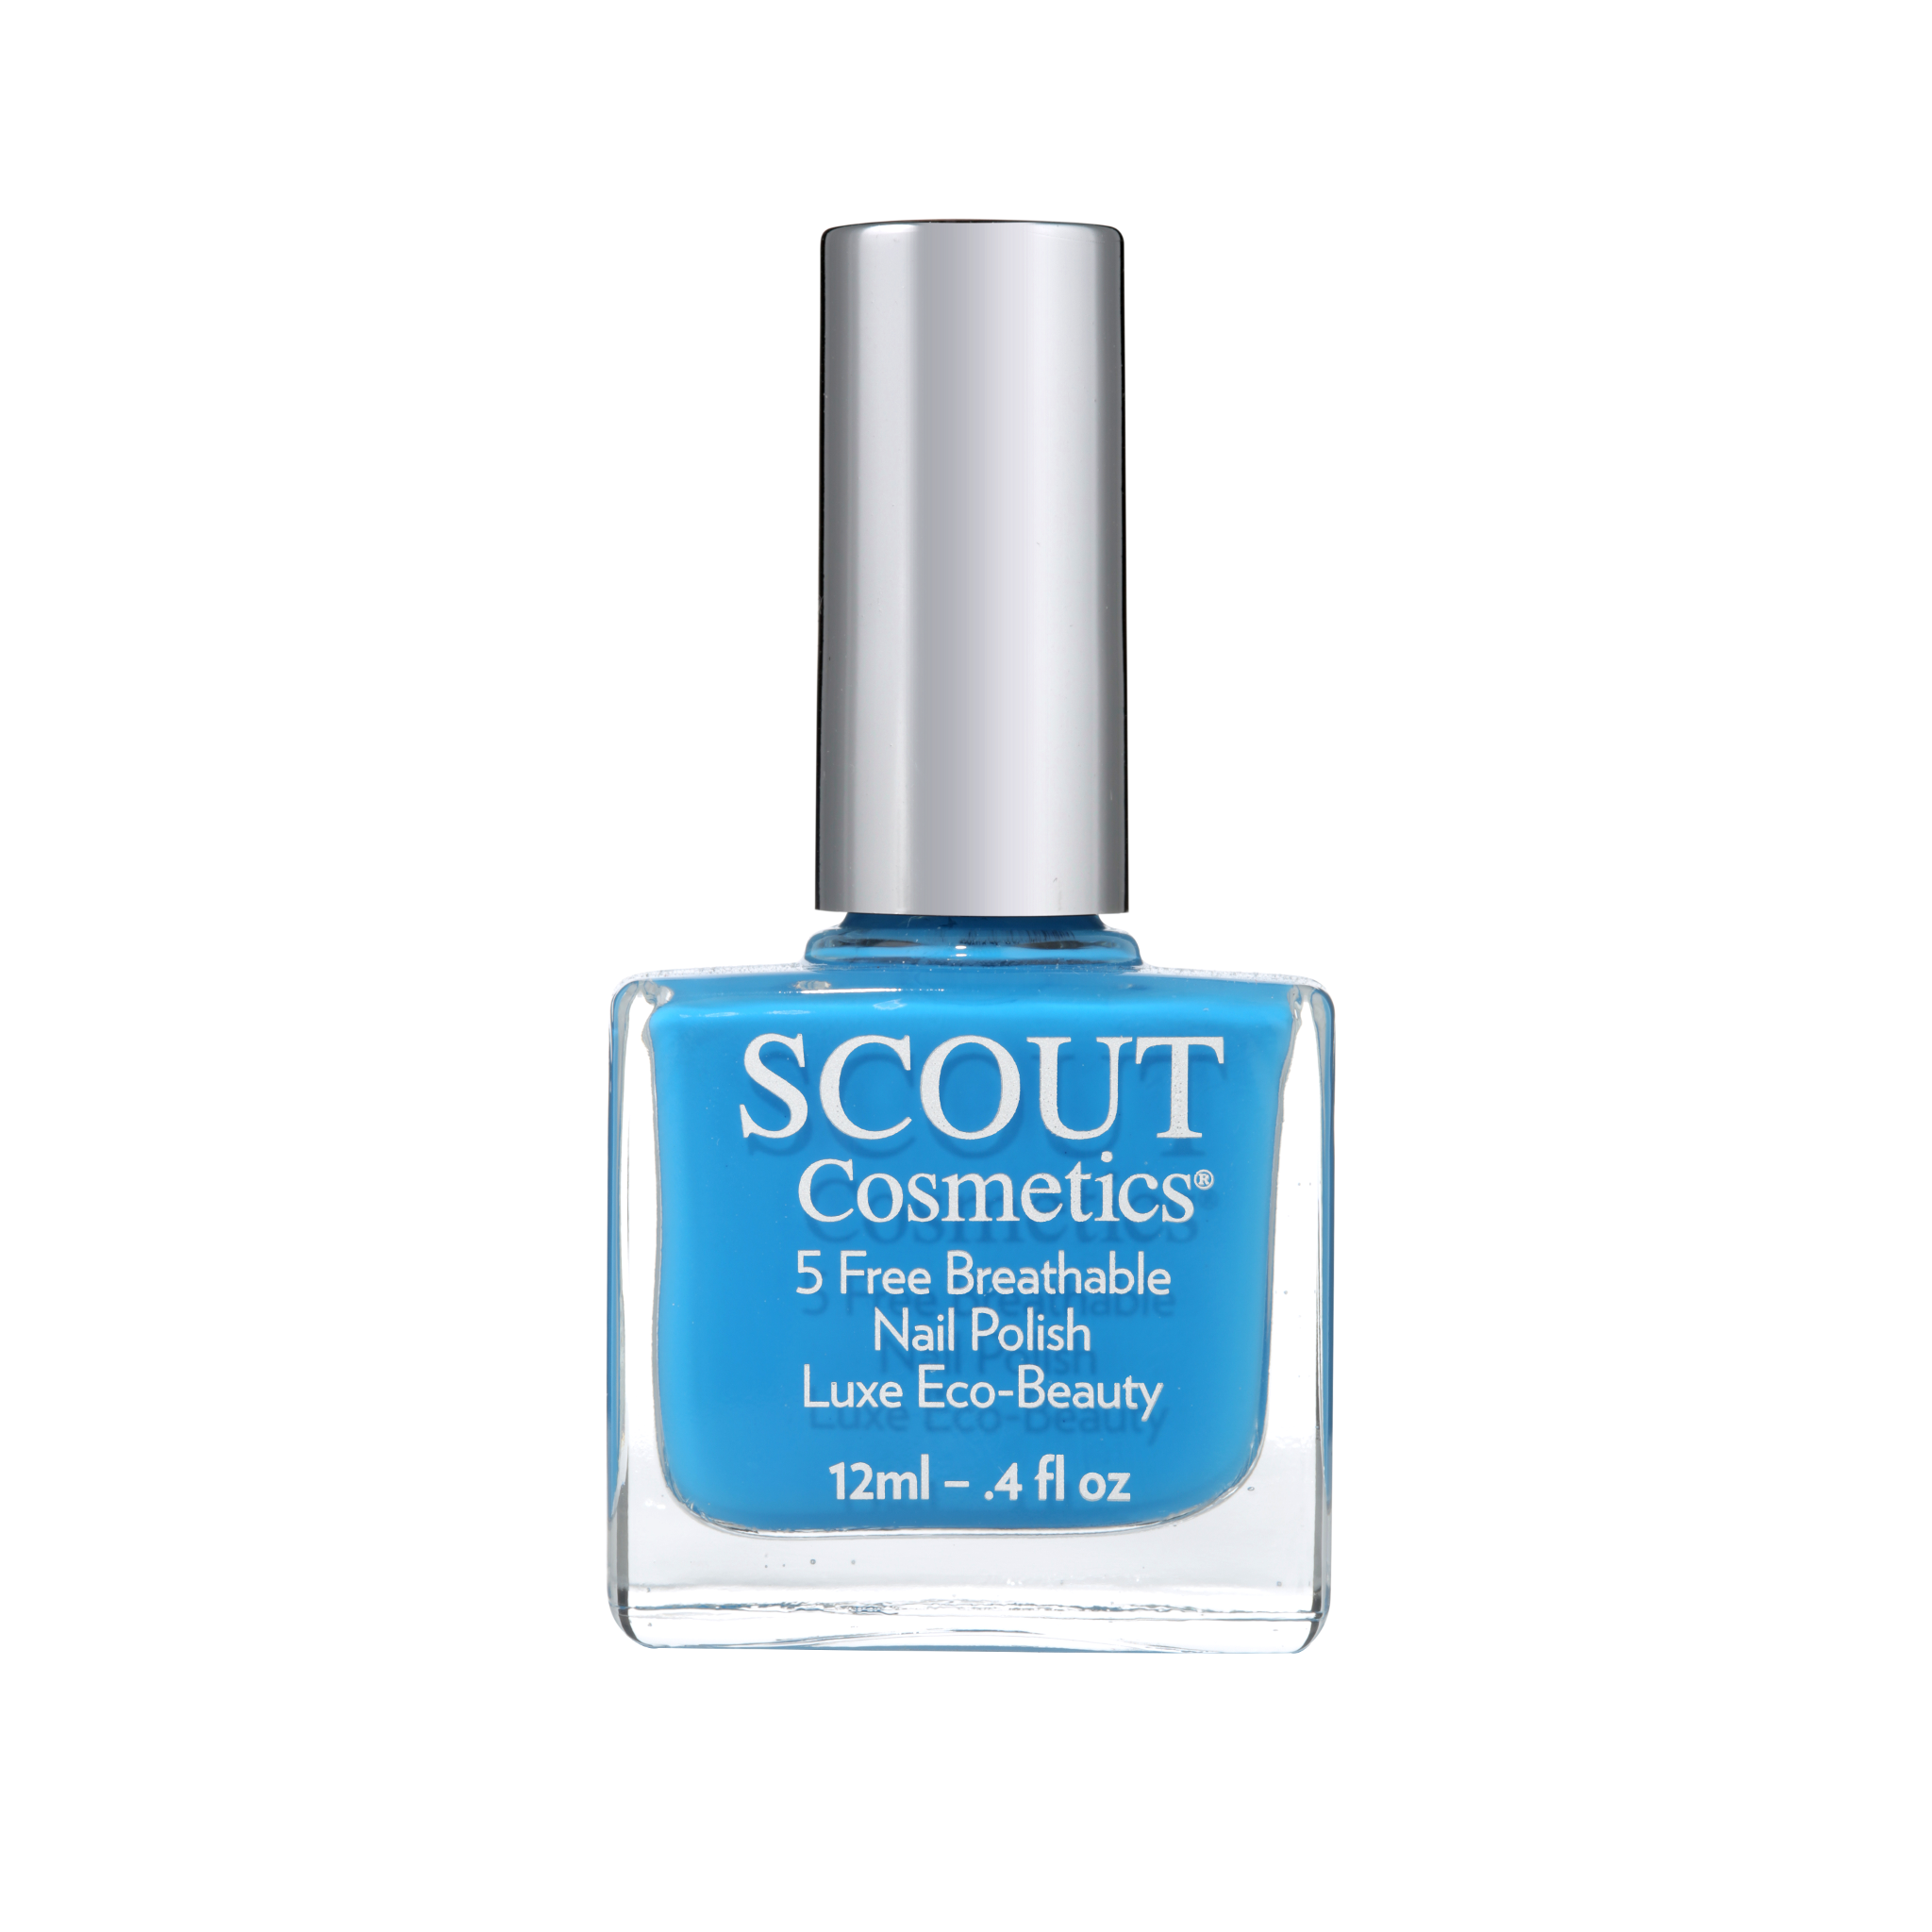 SCOUT Cosmetics Nail Polish - Fancy